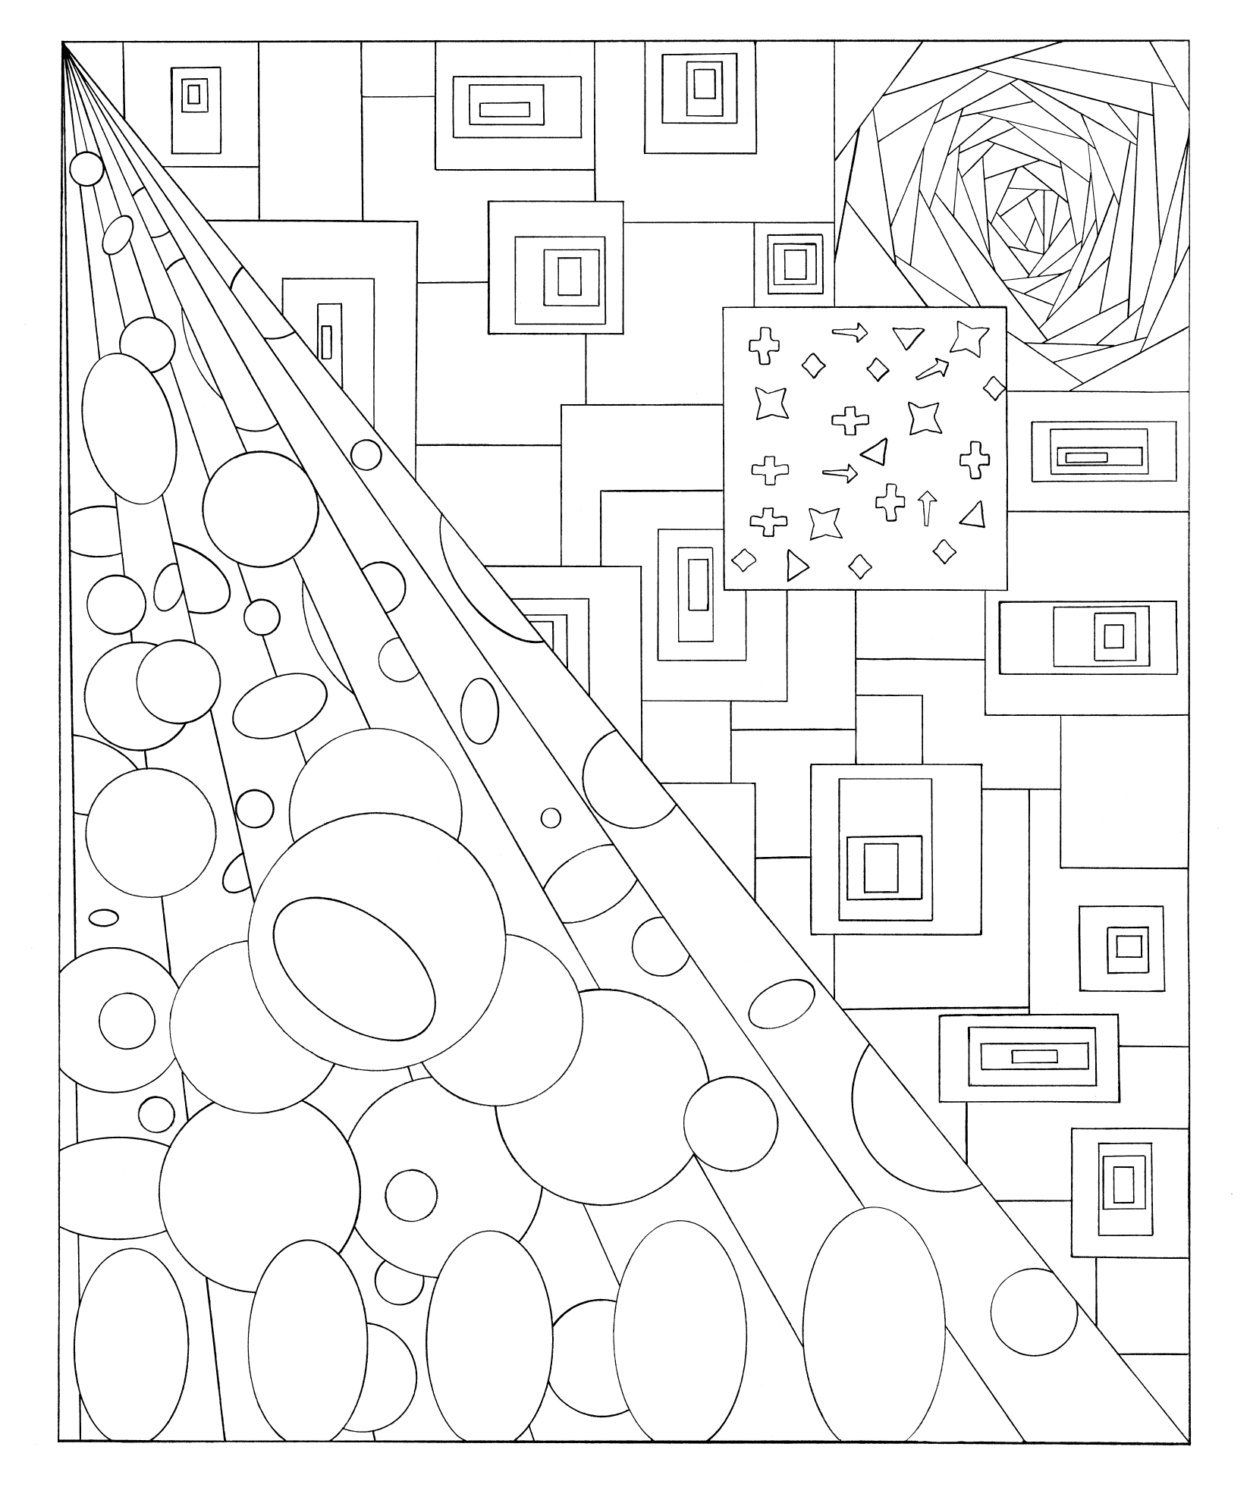 tunnel vision adult coloring page book sheets outline art etsy [ 1250 x 1500 Pixel ]